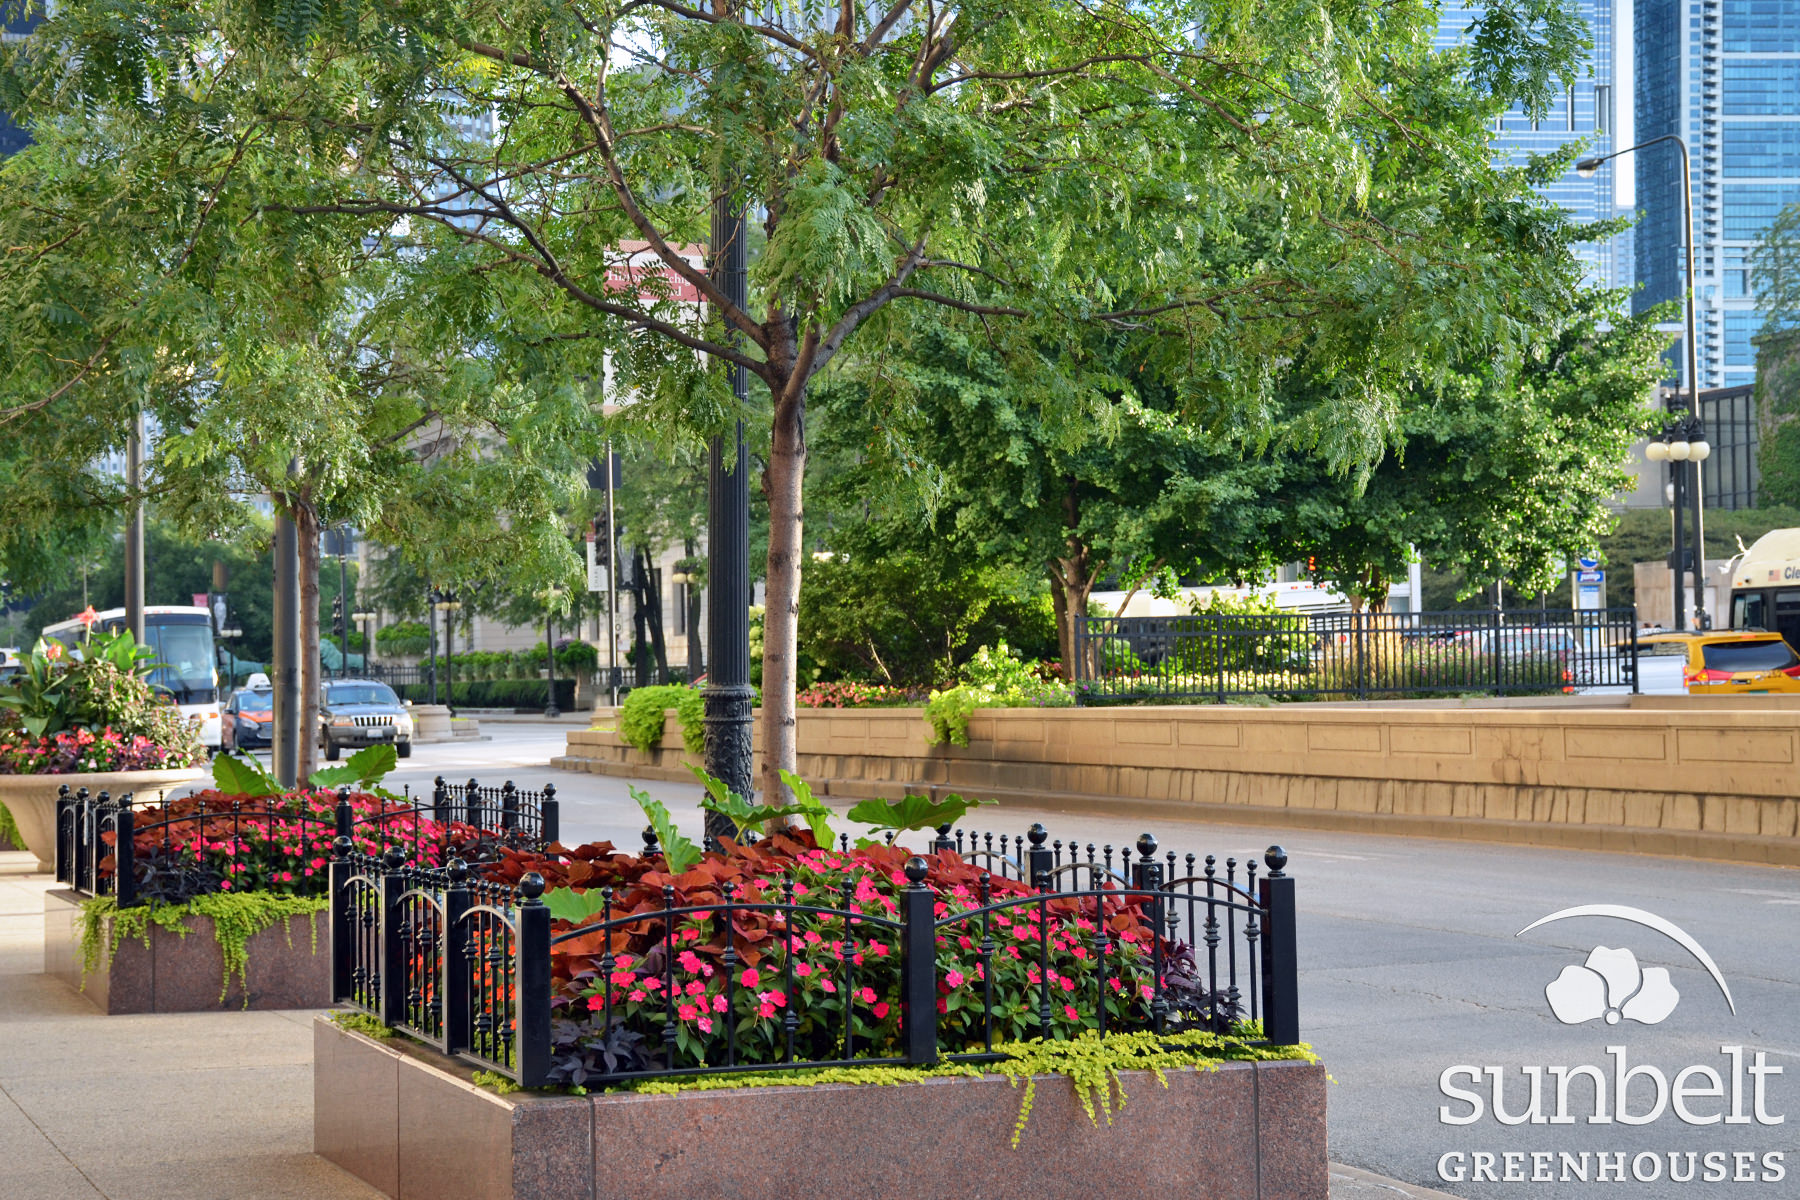 2015-08-19-chicago-landscaping-15.jpg